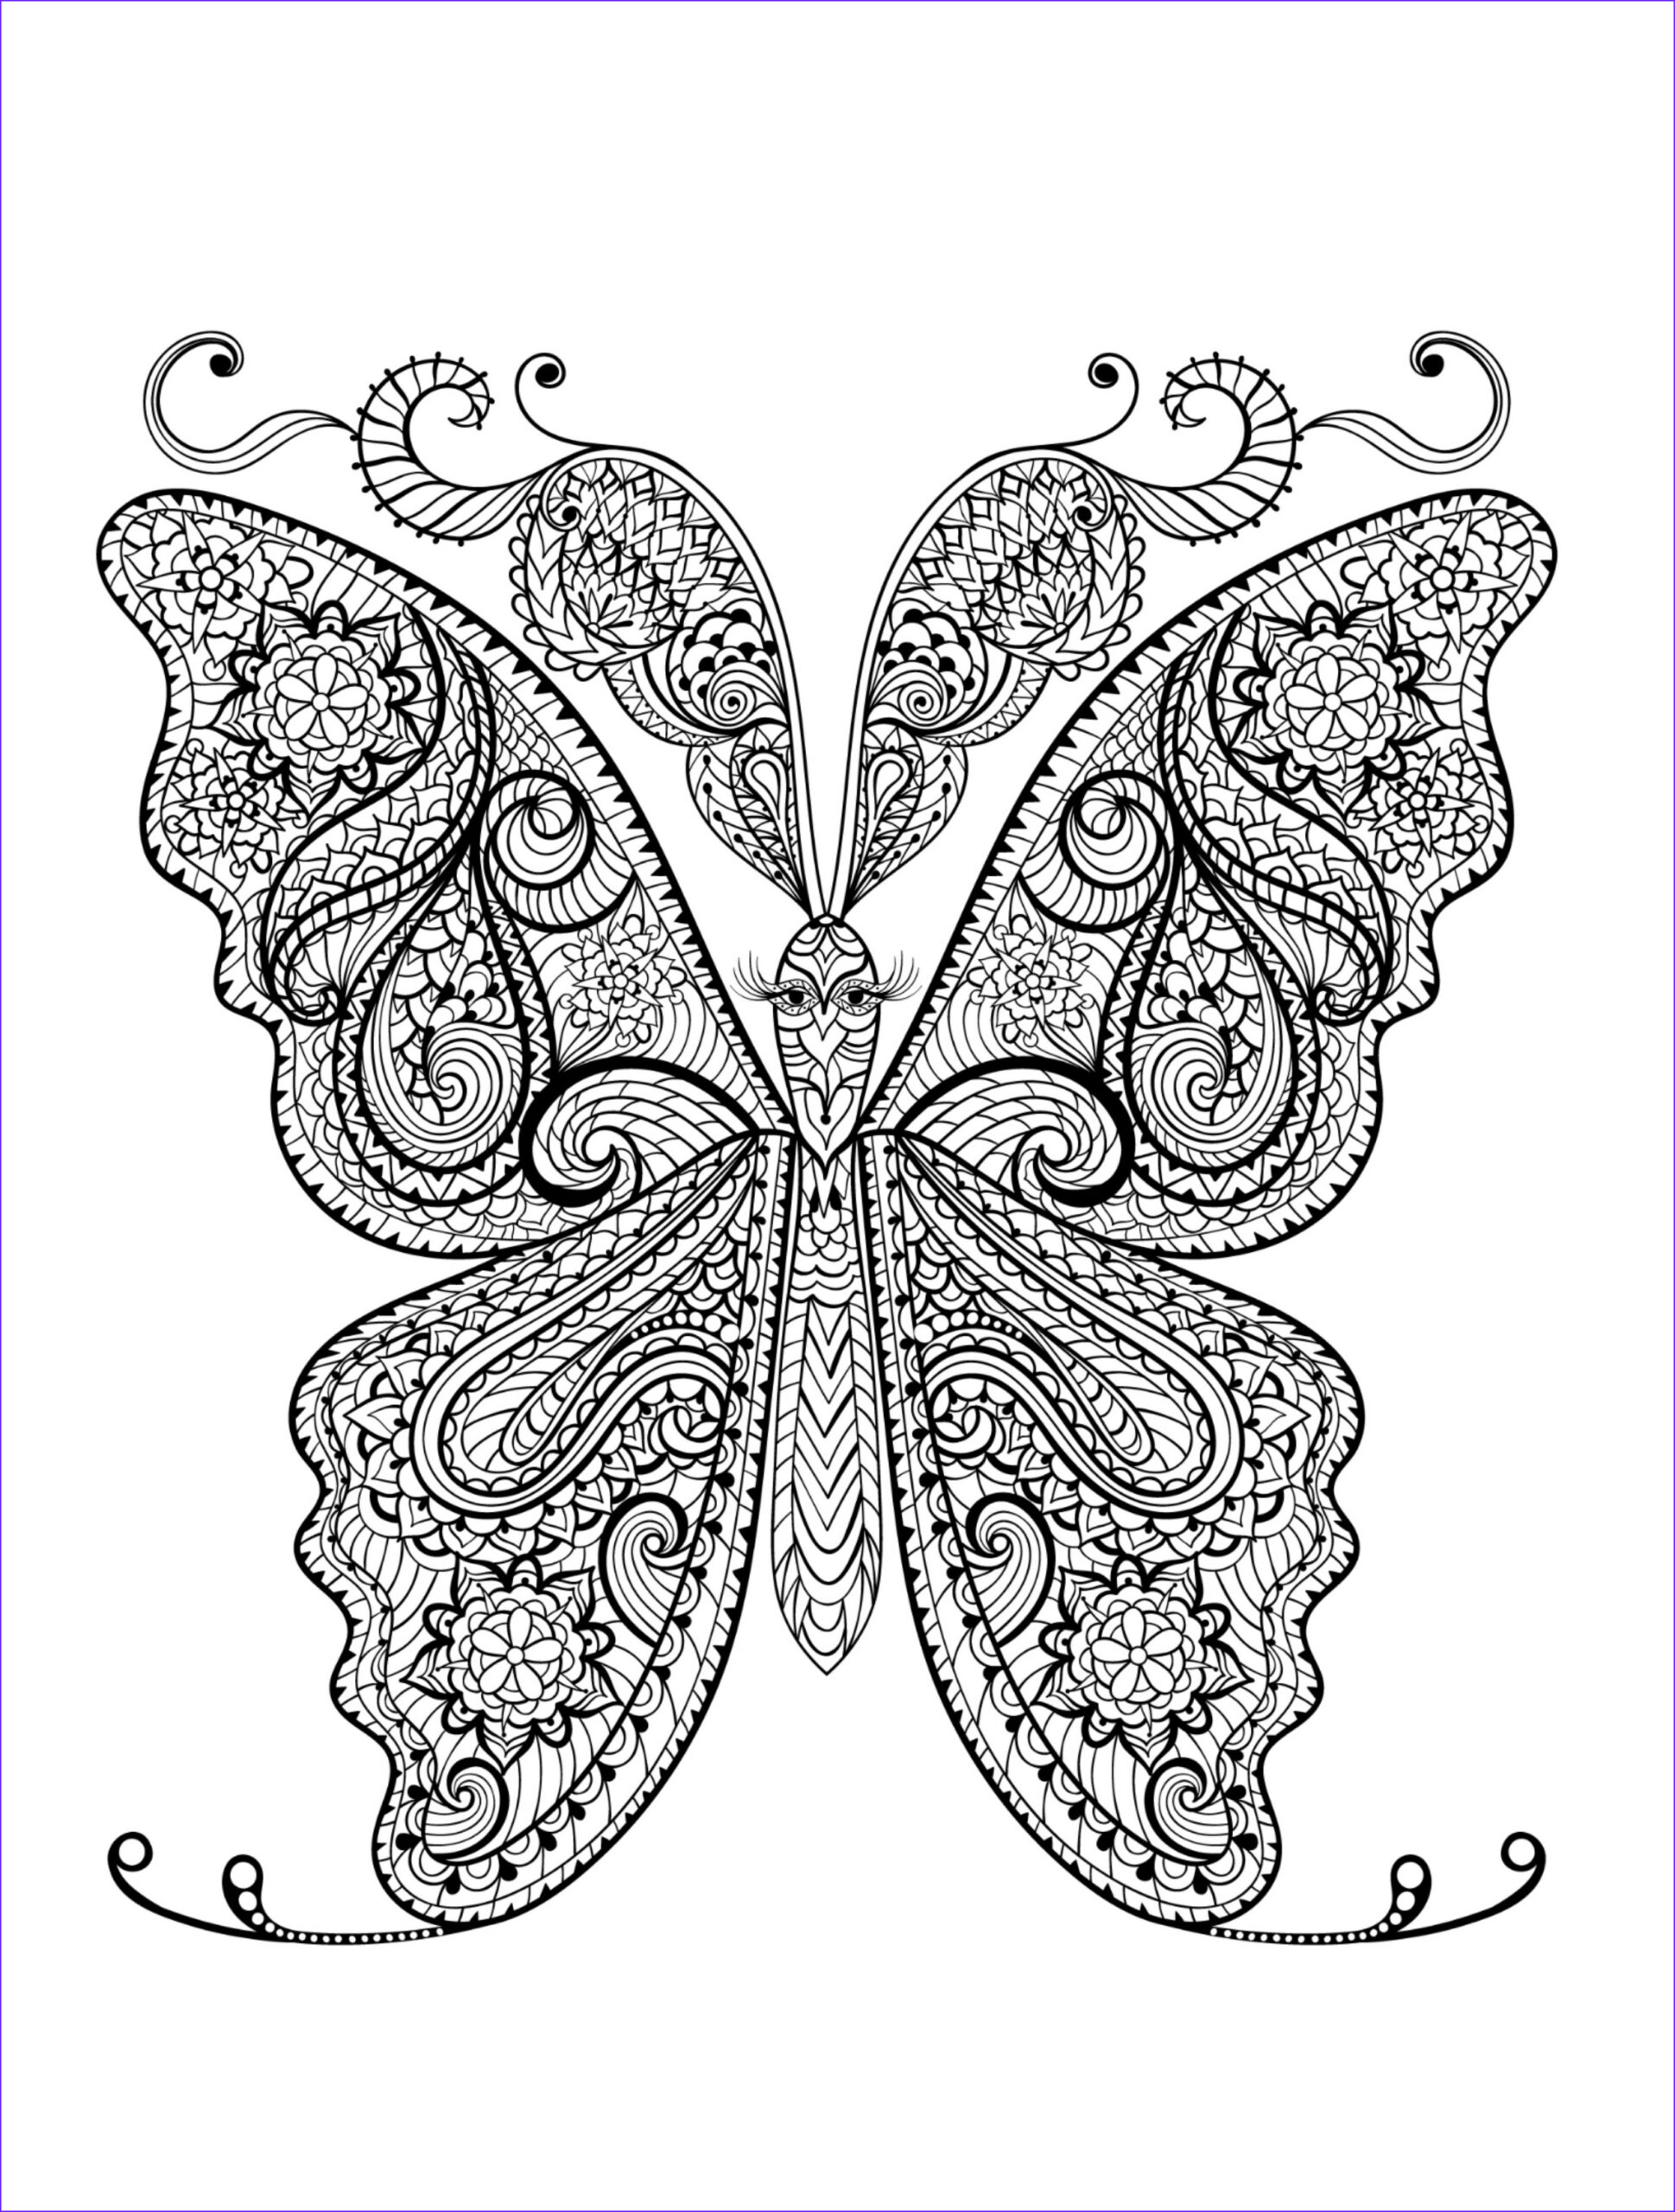 Coloring Pages Printable Adults Elegant Stock Animal Coloring Pages for Adults Best Coloring Pages for